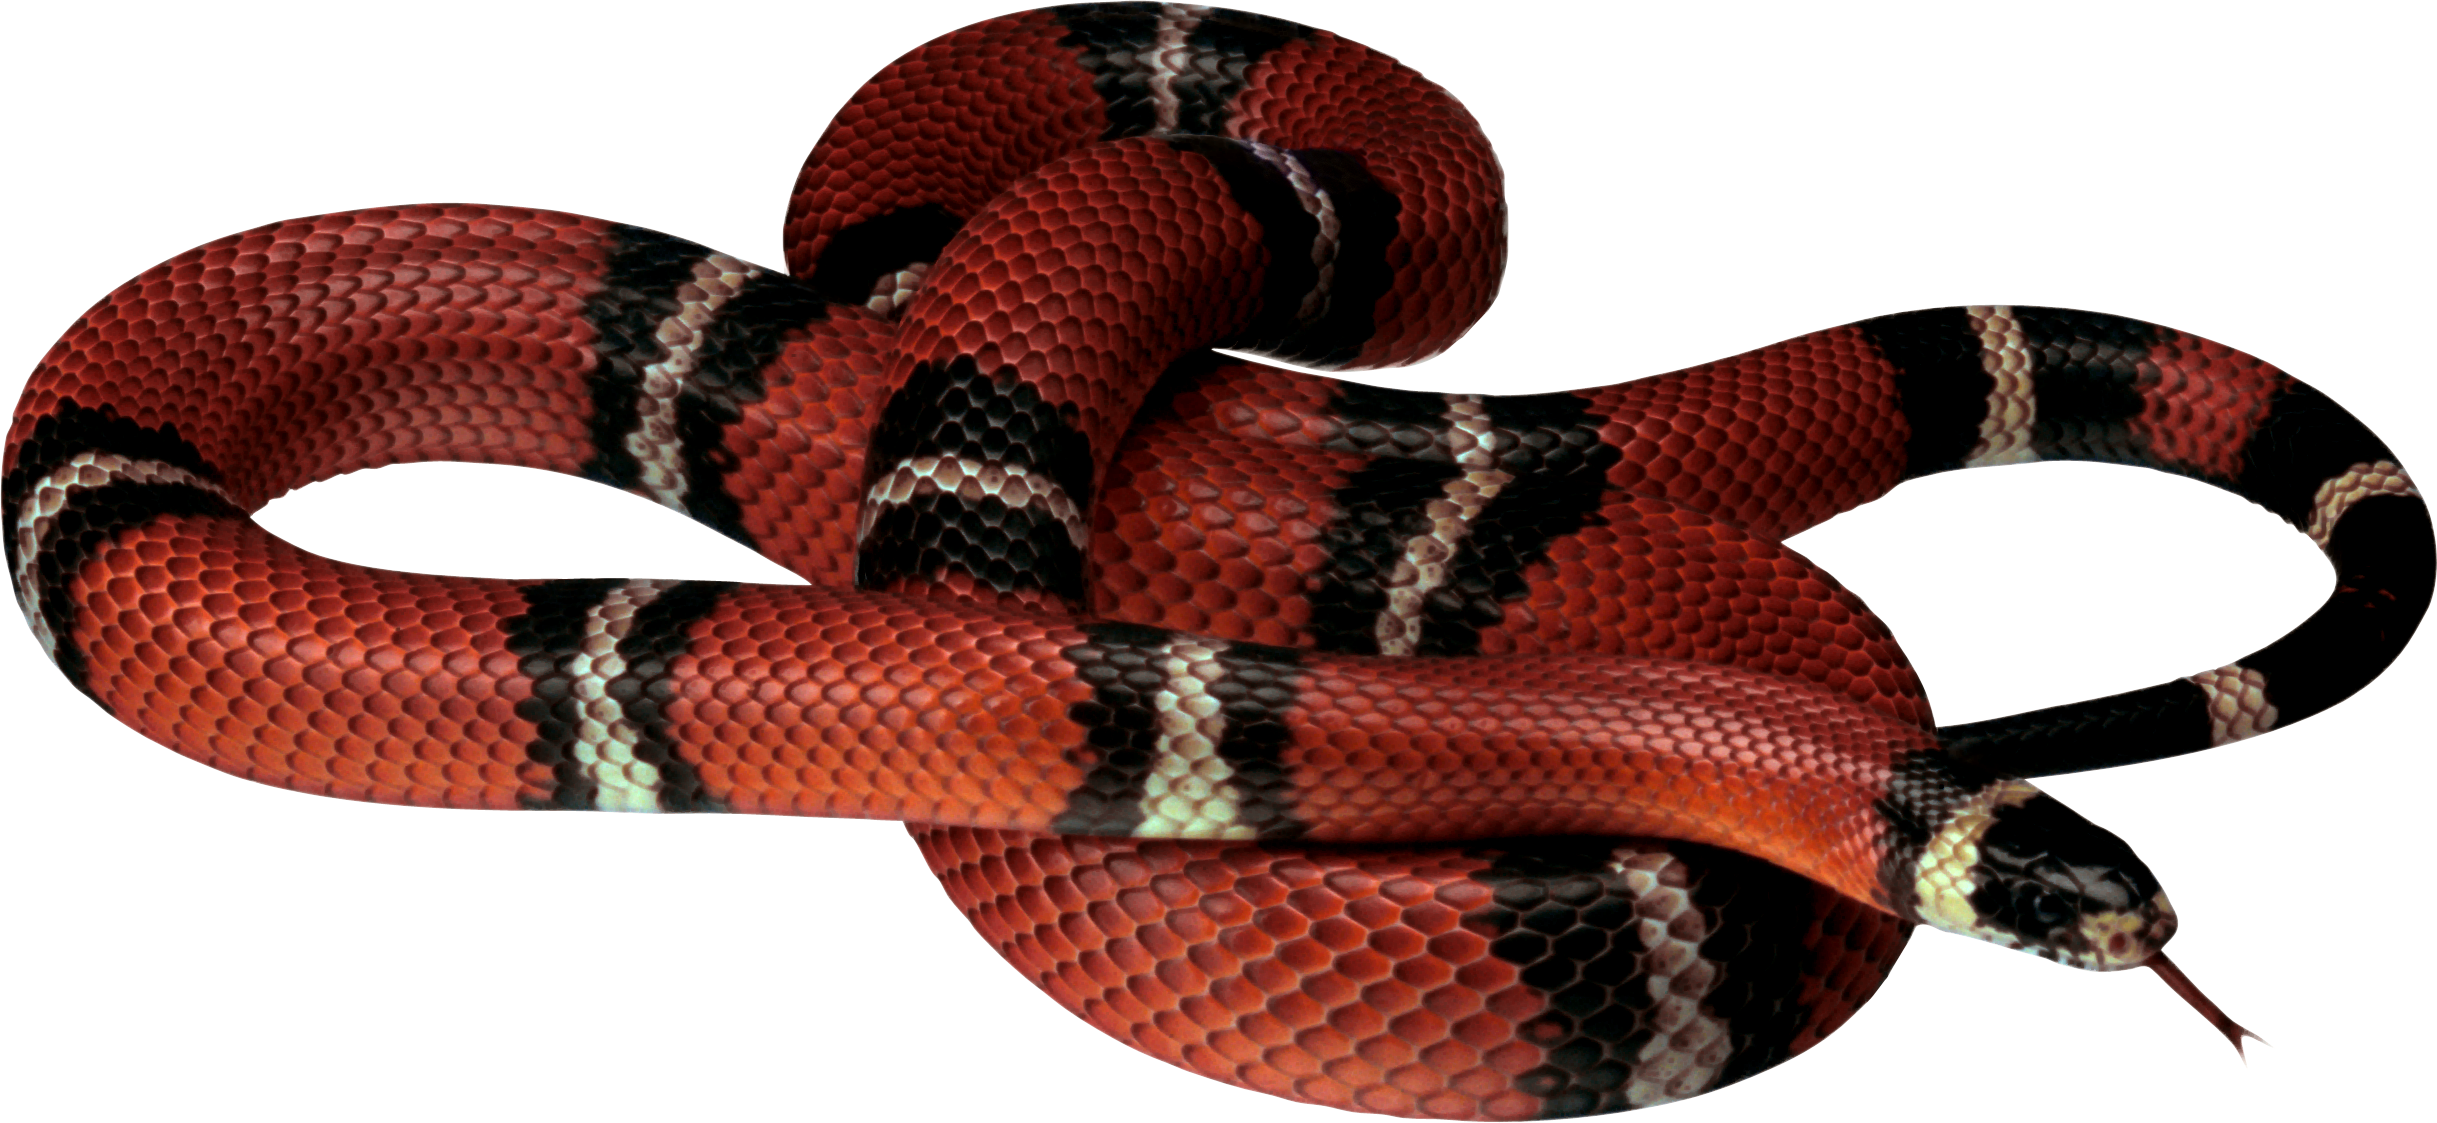 Snake PNG image picture download free - Snake HD PNG